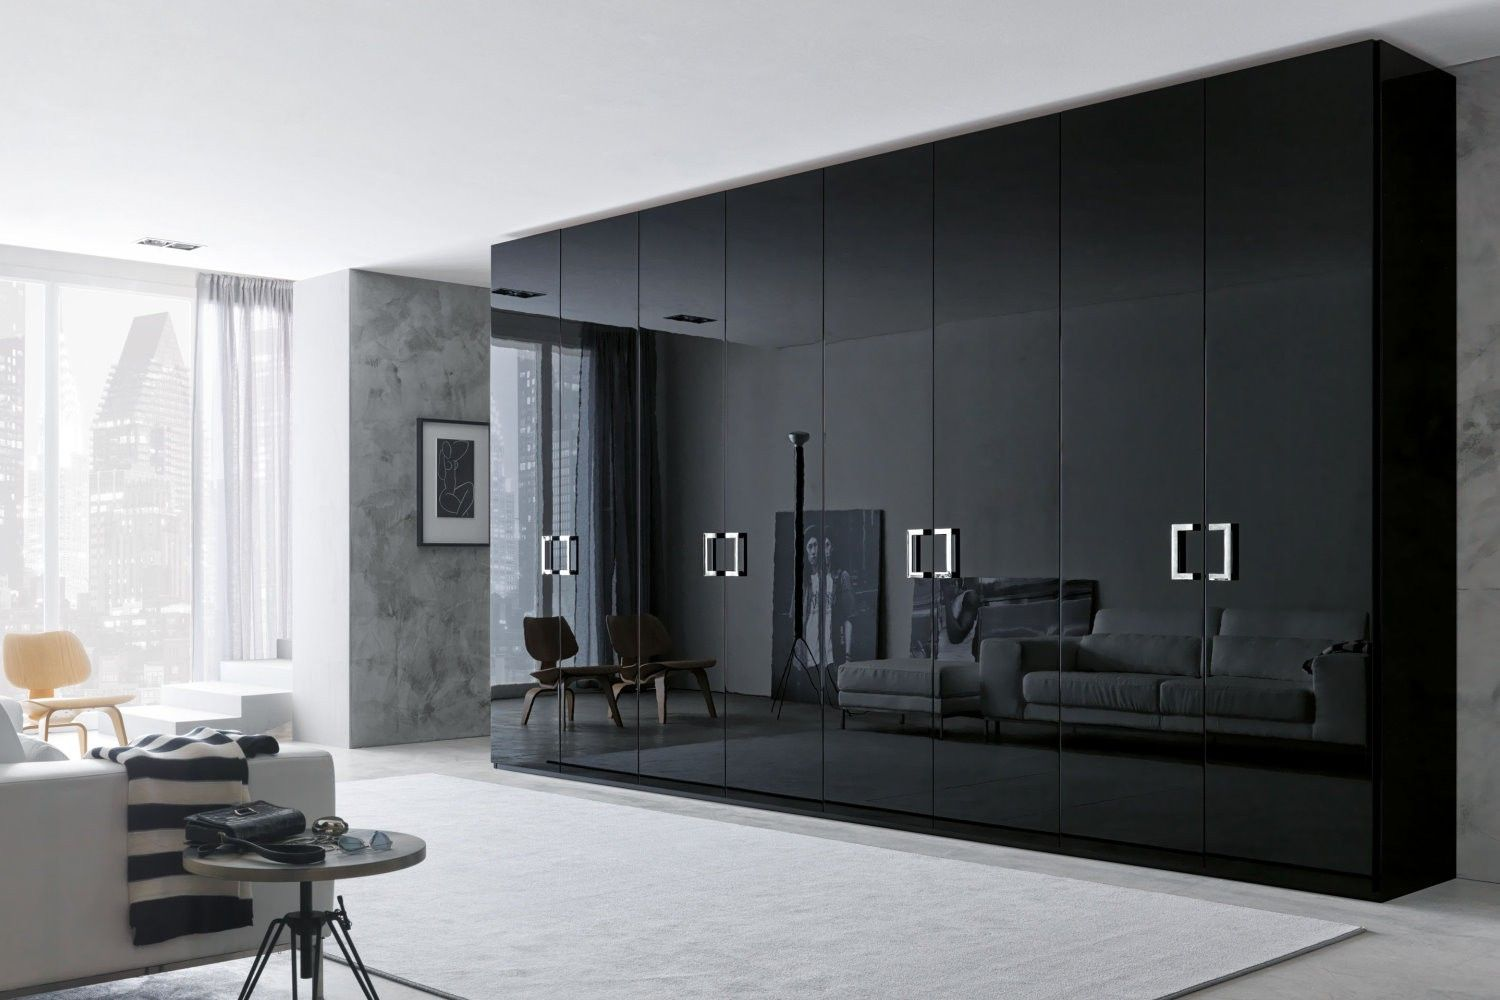 35 modern wardrobe furniture designs wardrobe design gray carpet and wardrobes - Designs for wardrobes in bedrooms ...